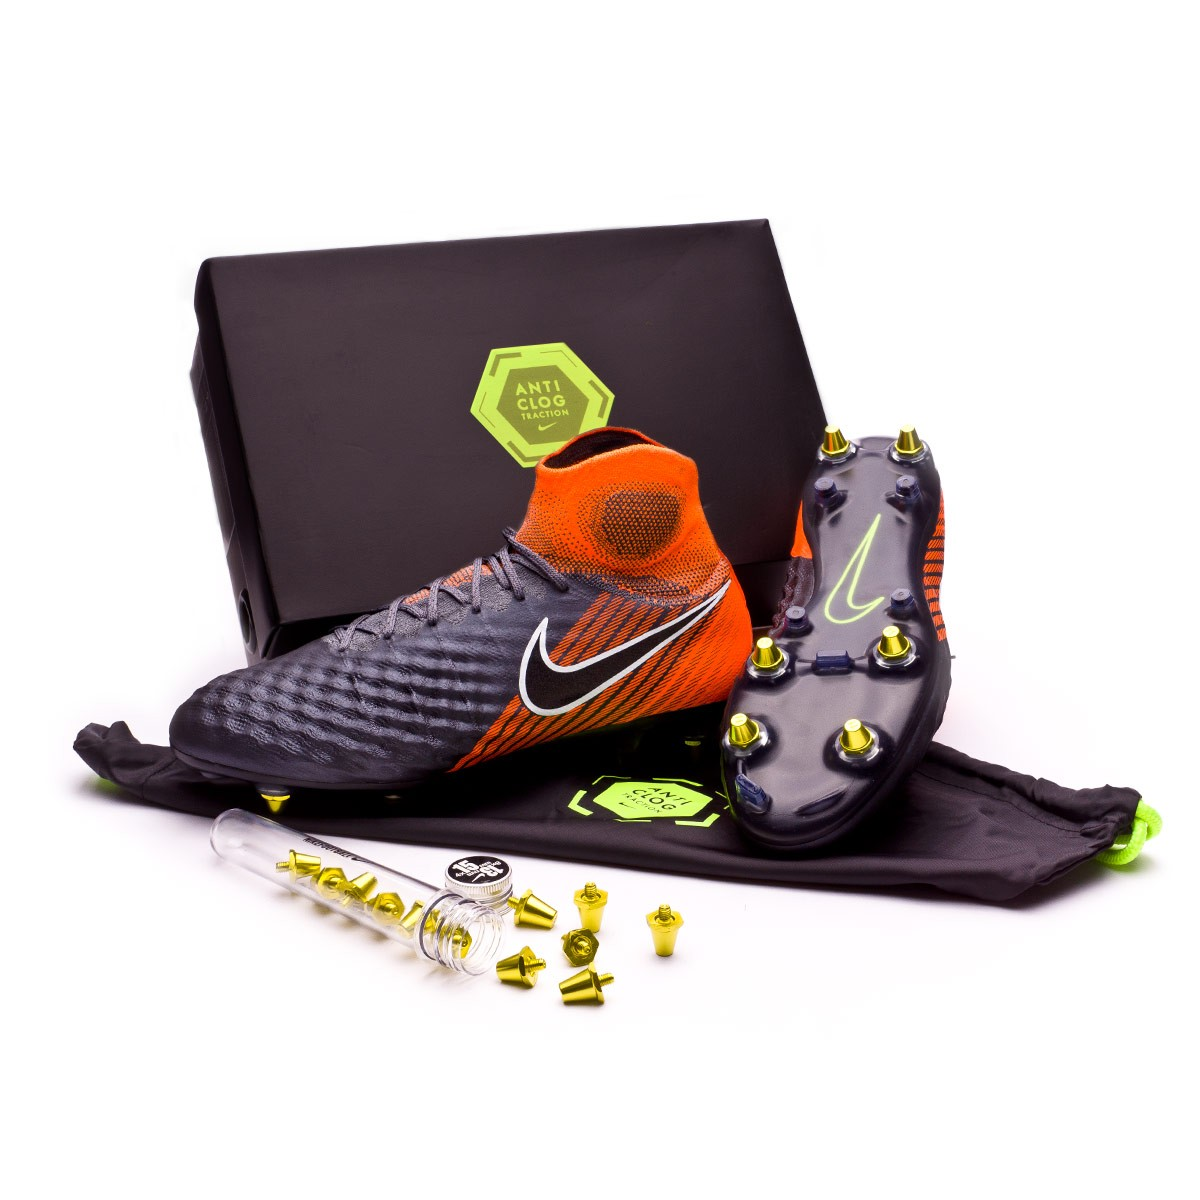 info for 6c746 7fddb Zapatos de fútbol Nike Magista Obra II Elite SG-Pro Anti-Clog Dark  grey-Black-Total orange-White - Soloporteros es ahora Fútbol Emotion